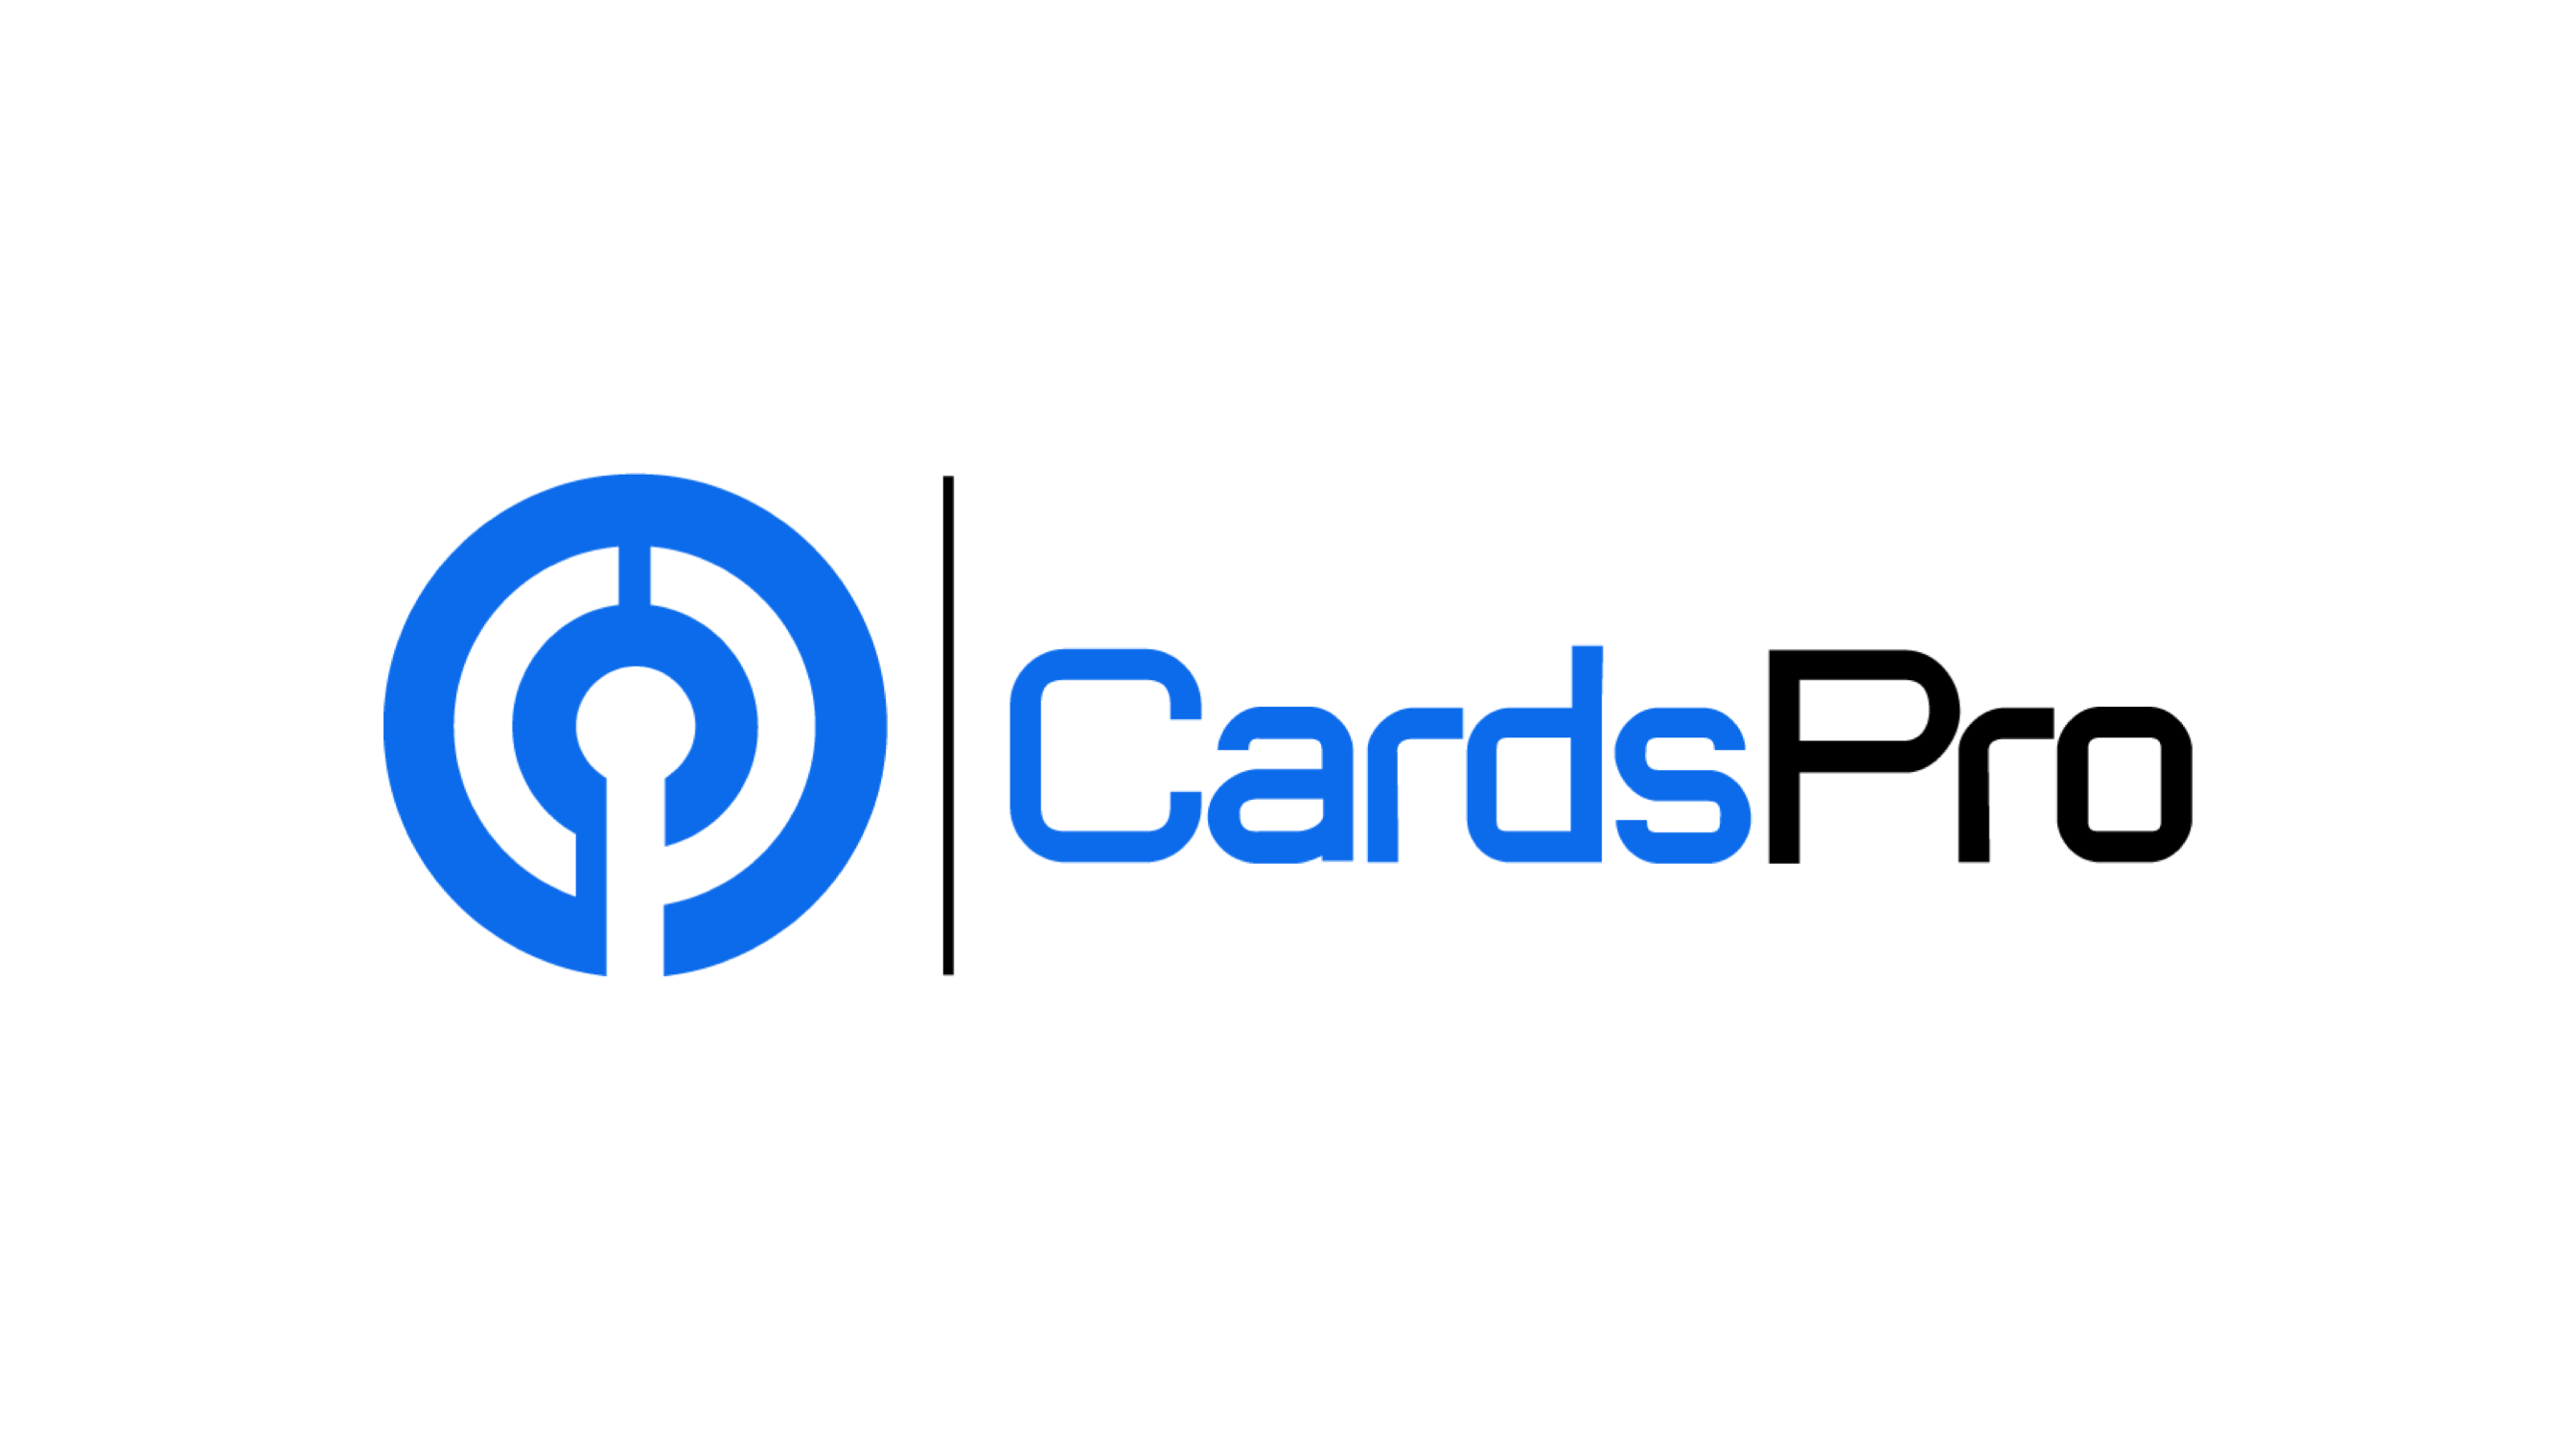 Cards Pro